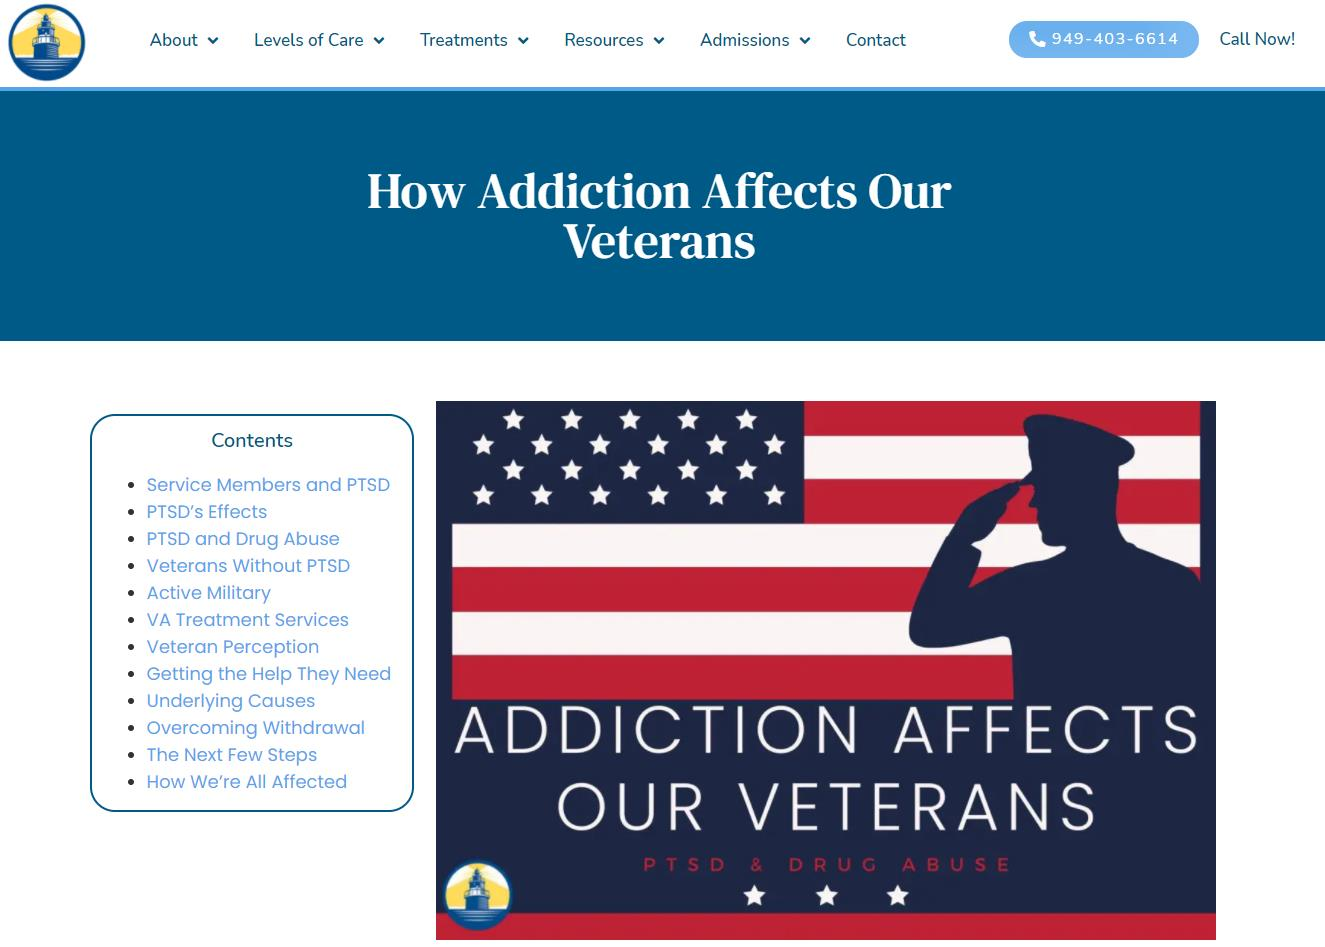 HOW ADDICTION AFFECTS VETERANS